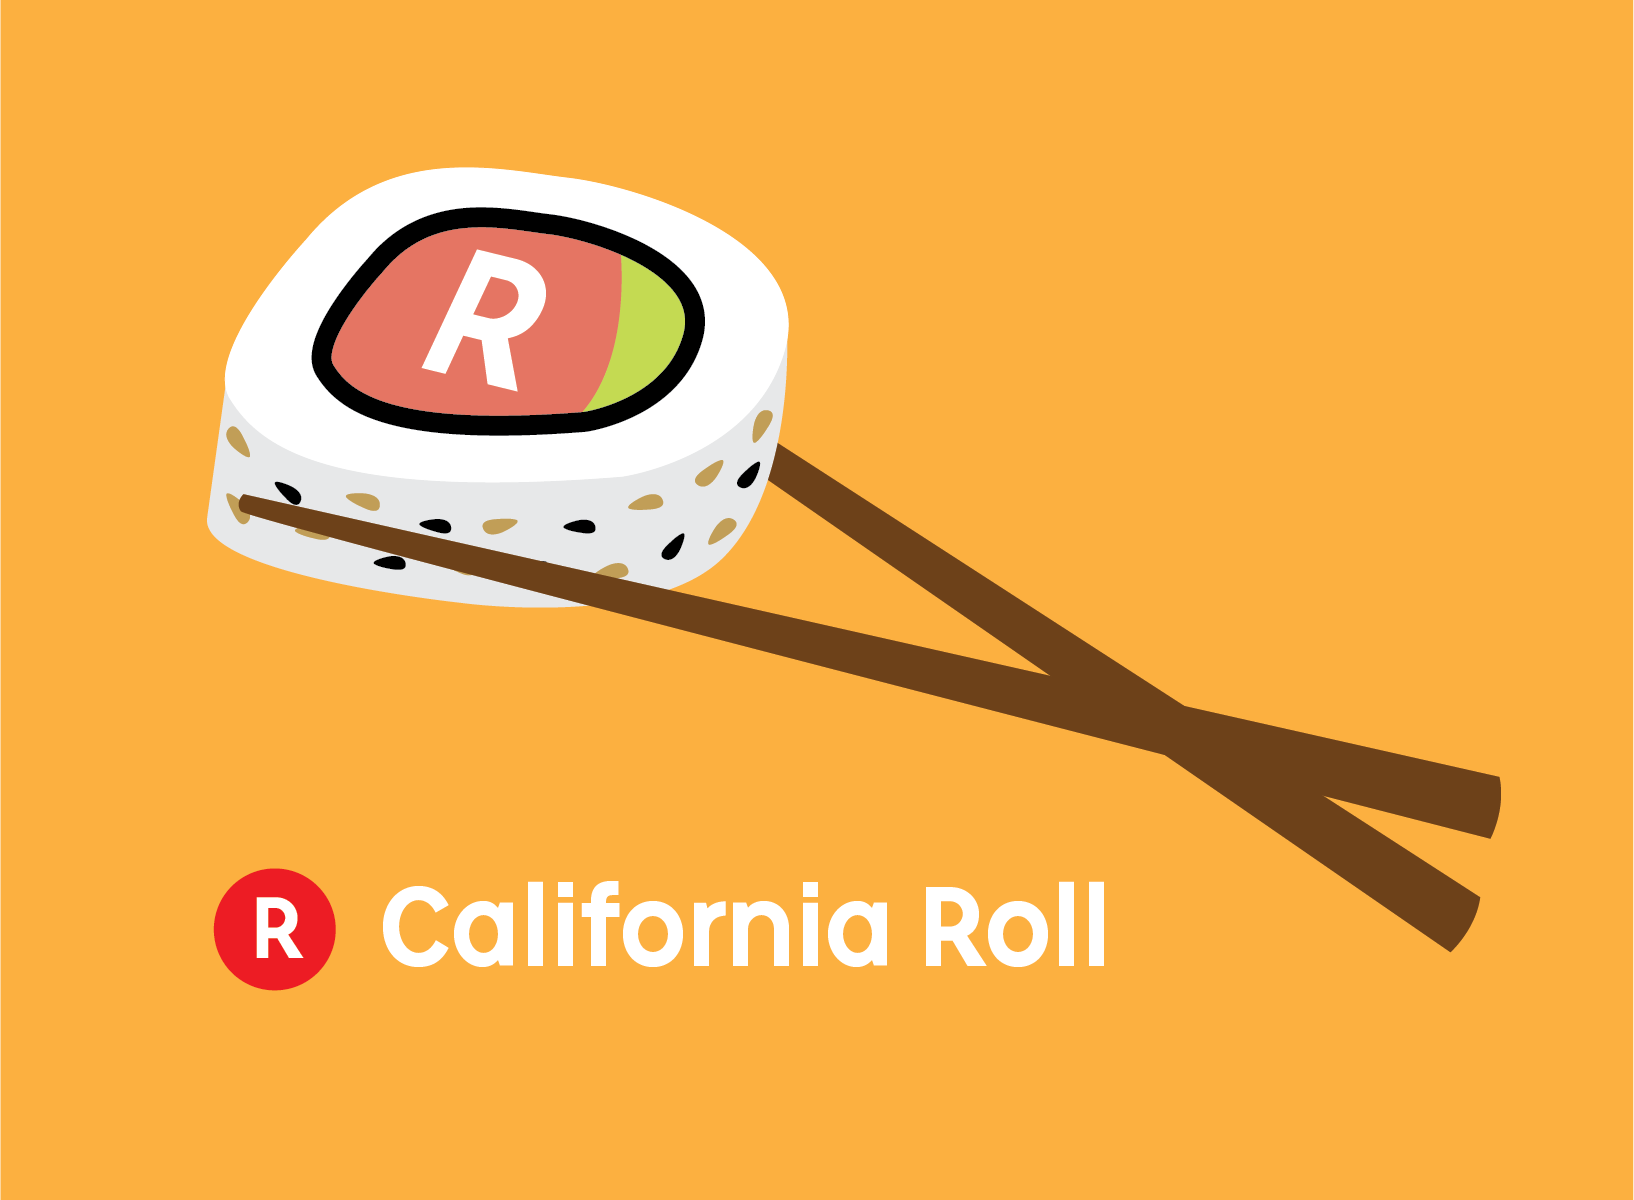 Rakuten California Roll team logo   Adobe Illustrator